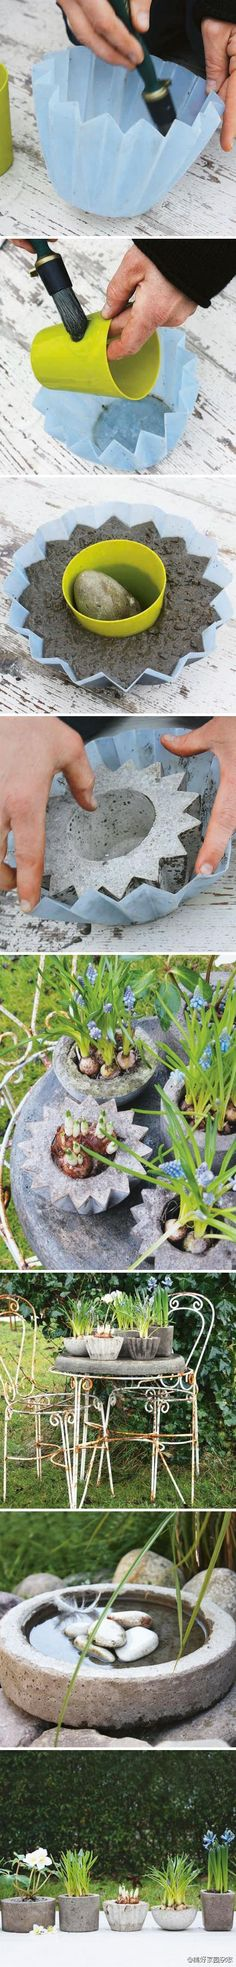 How to make DIY concrete planters